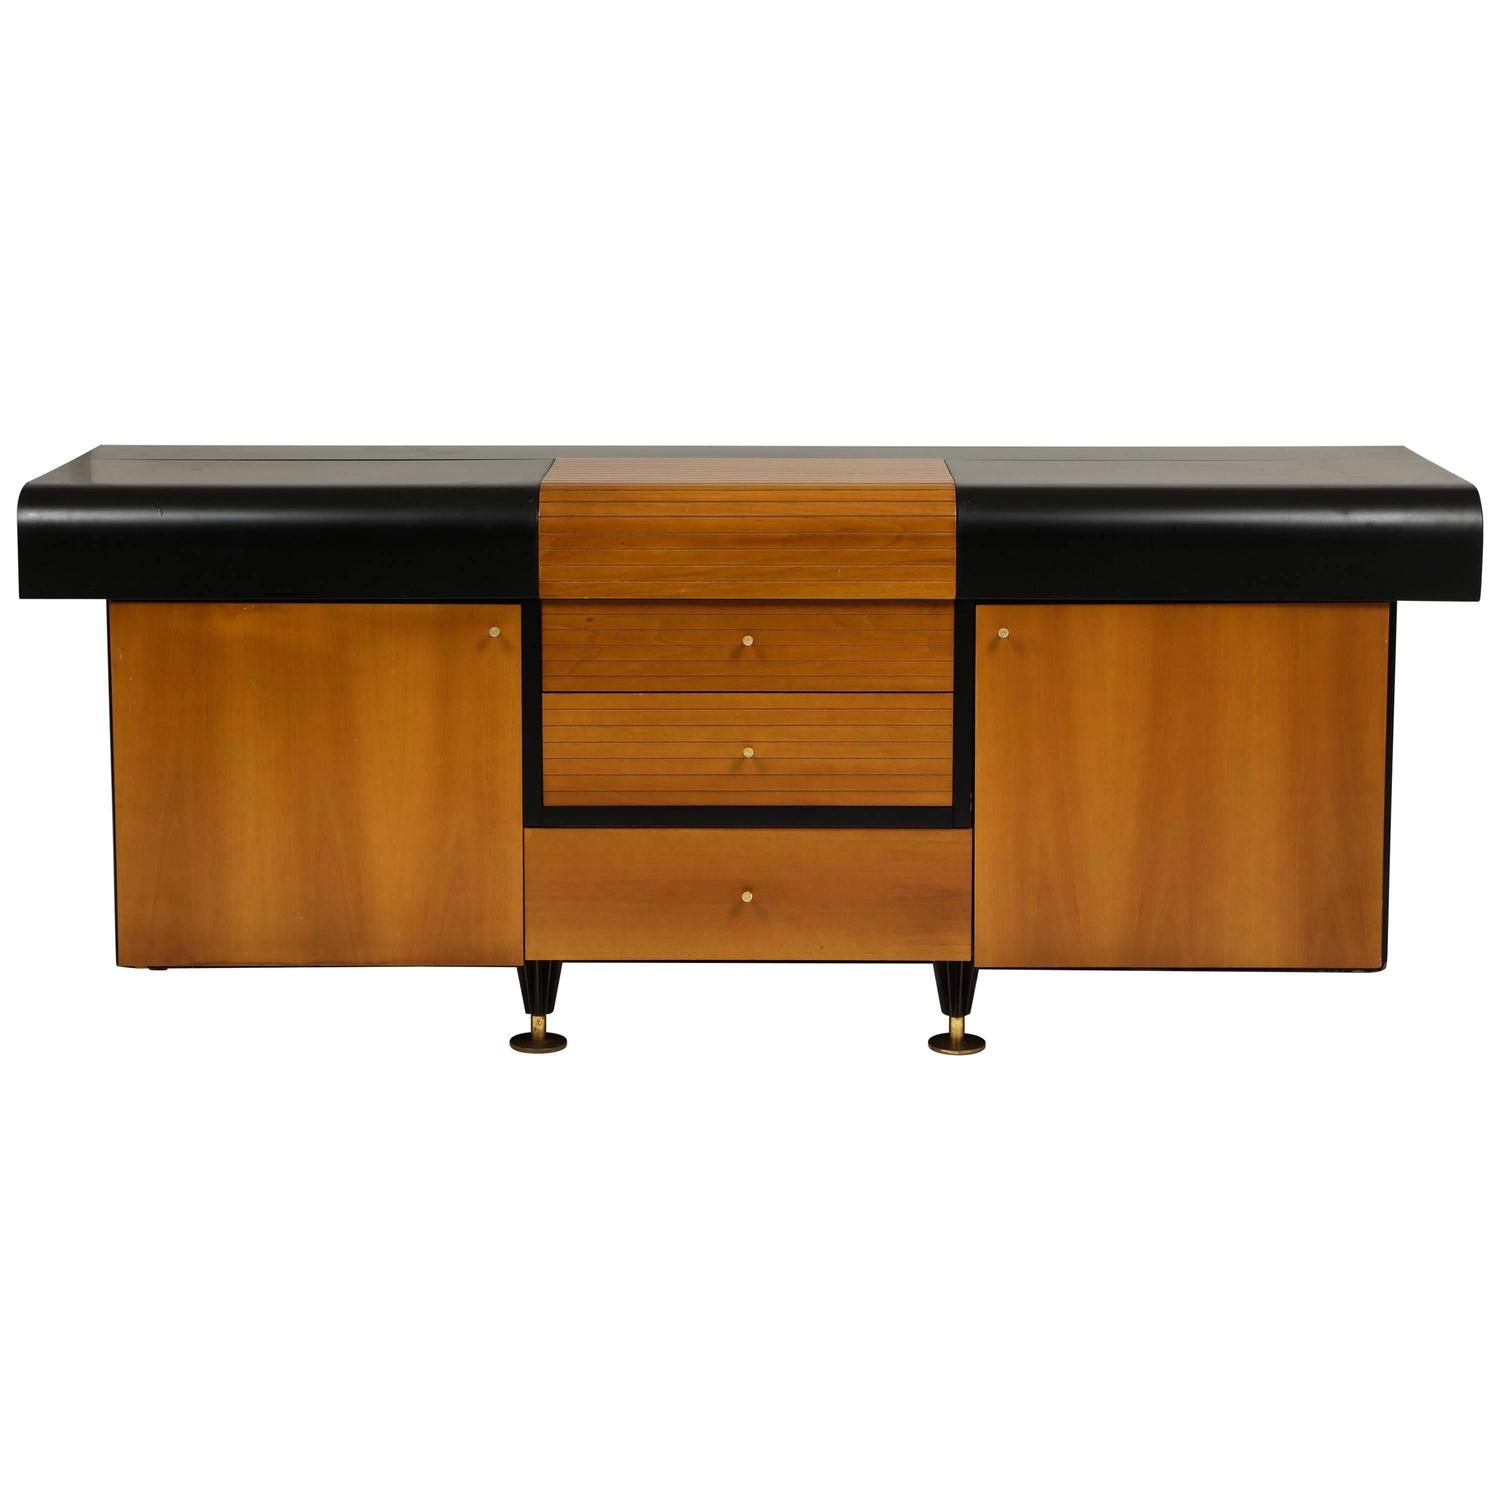 Pierre Cardin Sideboard Buffet Dresser Black and Wood Brass Detail